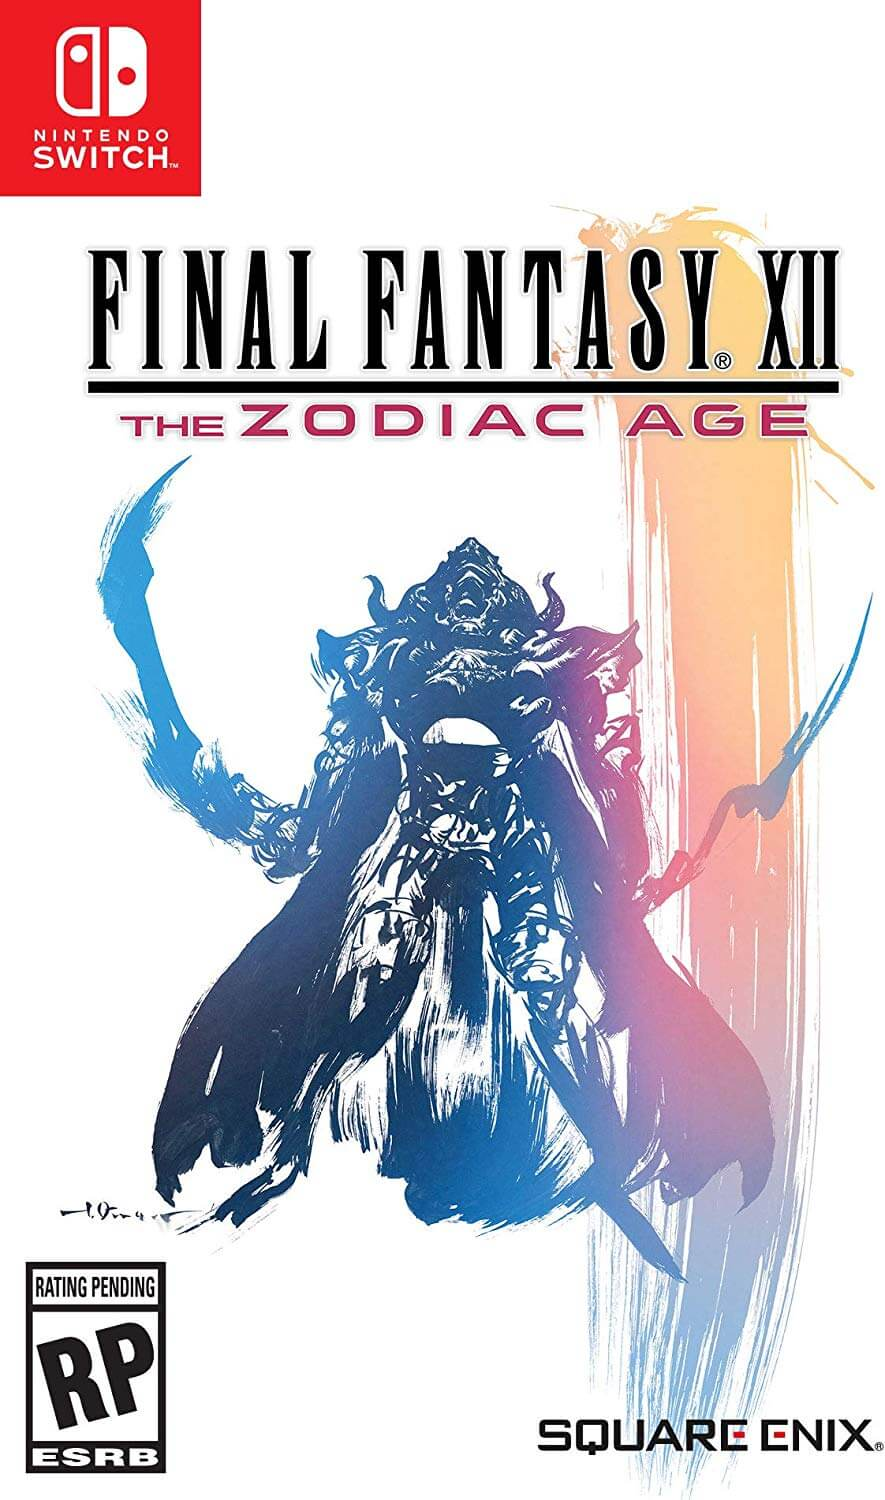 Final Fantasy XII : The Zodiac Age Nintendo Switch boxart